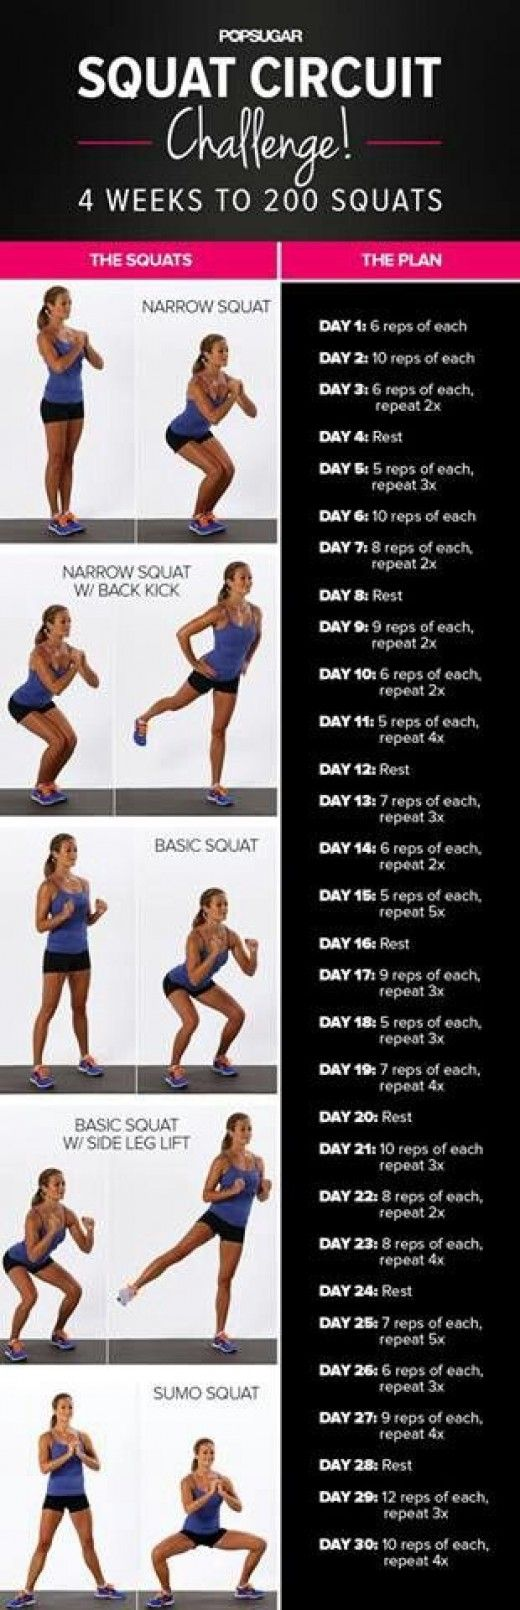 The benefits of squatting